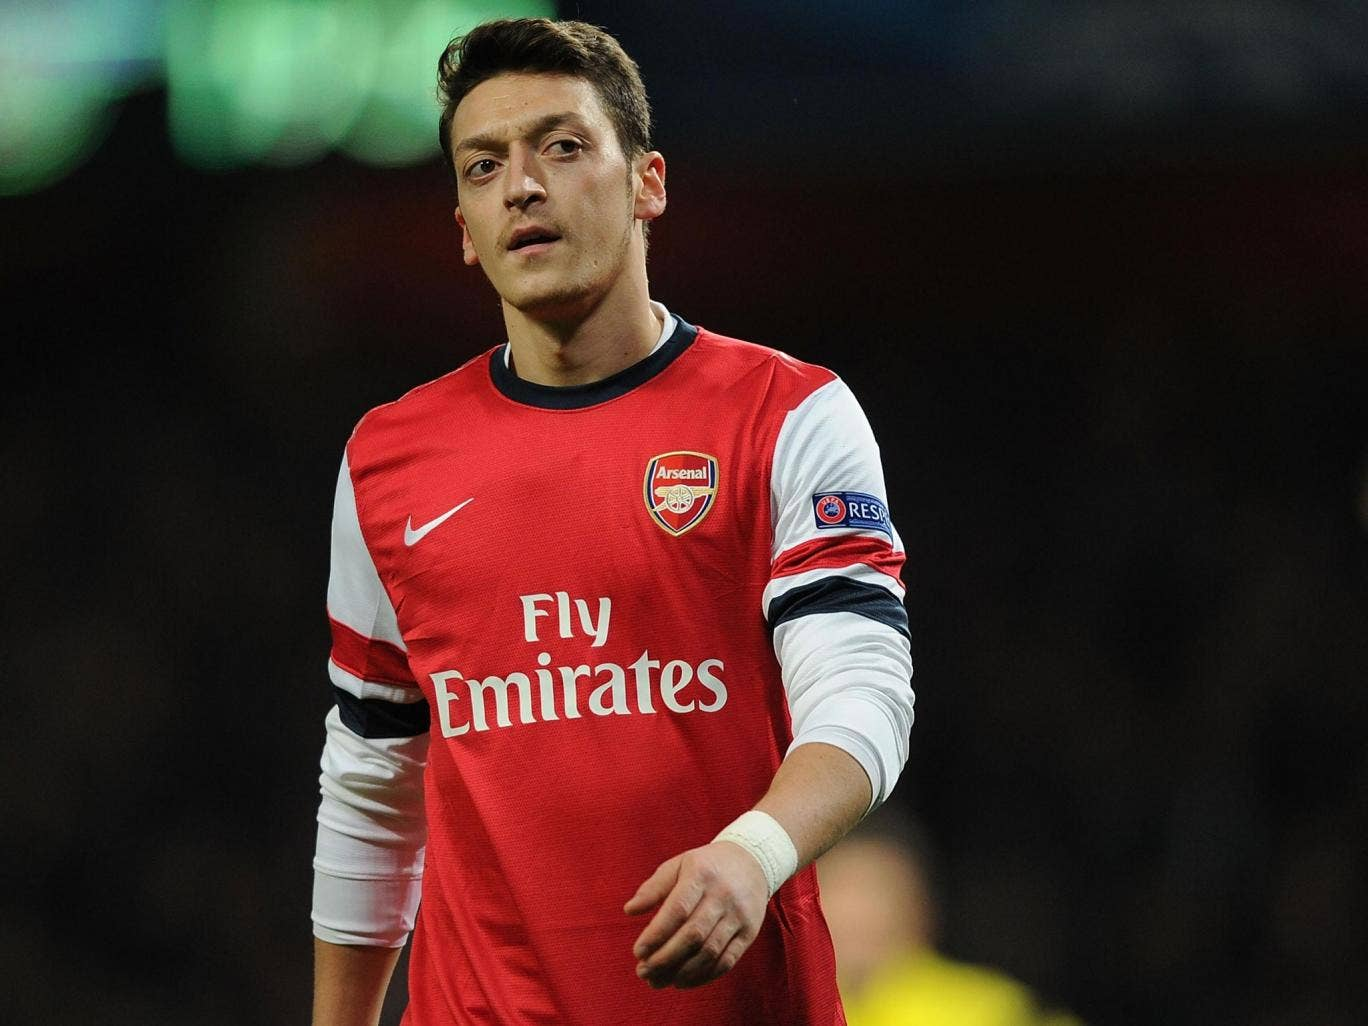 Mesut Özil's lacklustre display showed the effects of a busy run of games since Christmas